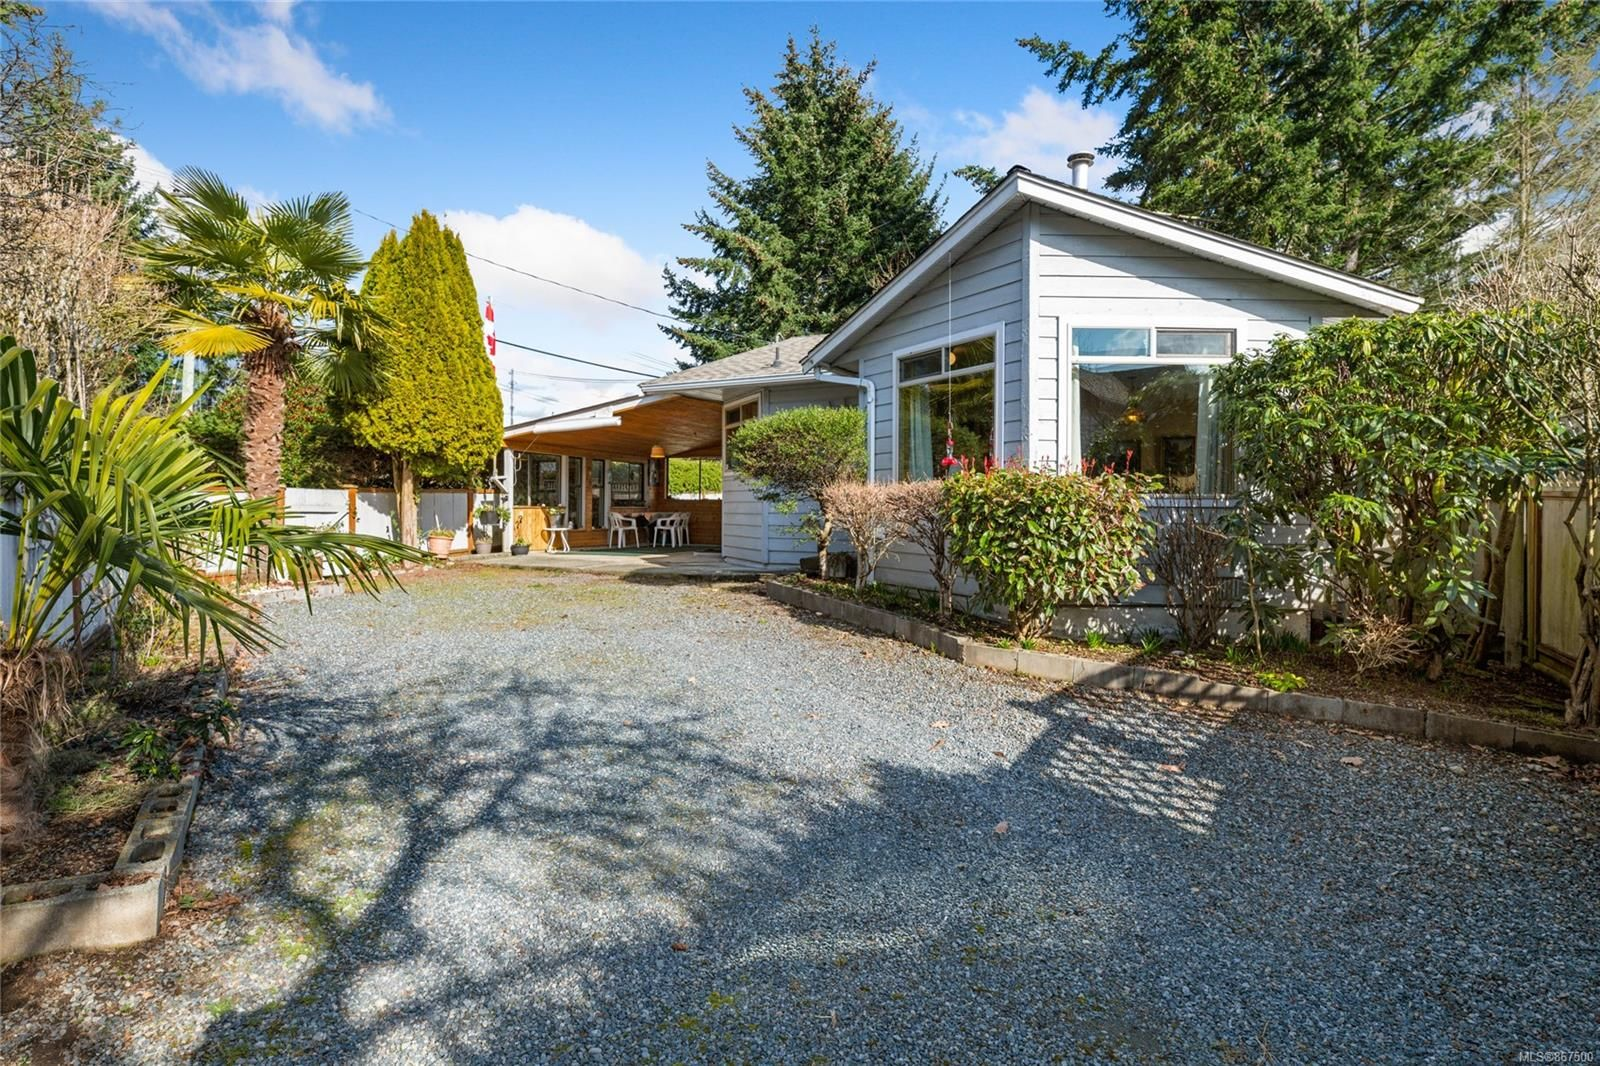 Main Photo: 3014 104TH St in : Na Uplands House for sale (Nanaimo)  : MLS®# 867500